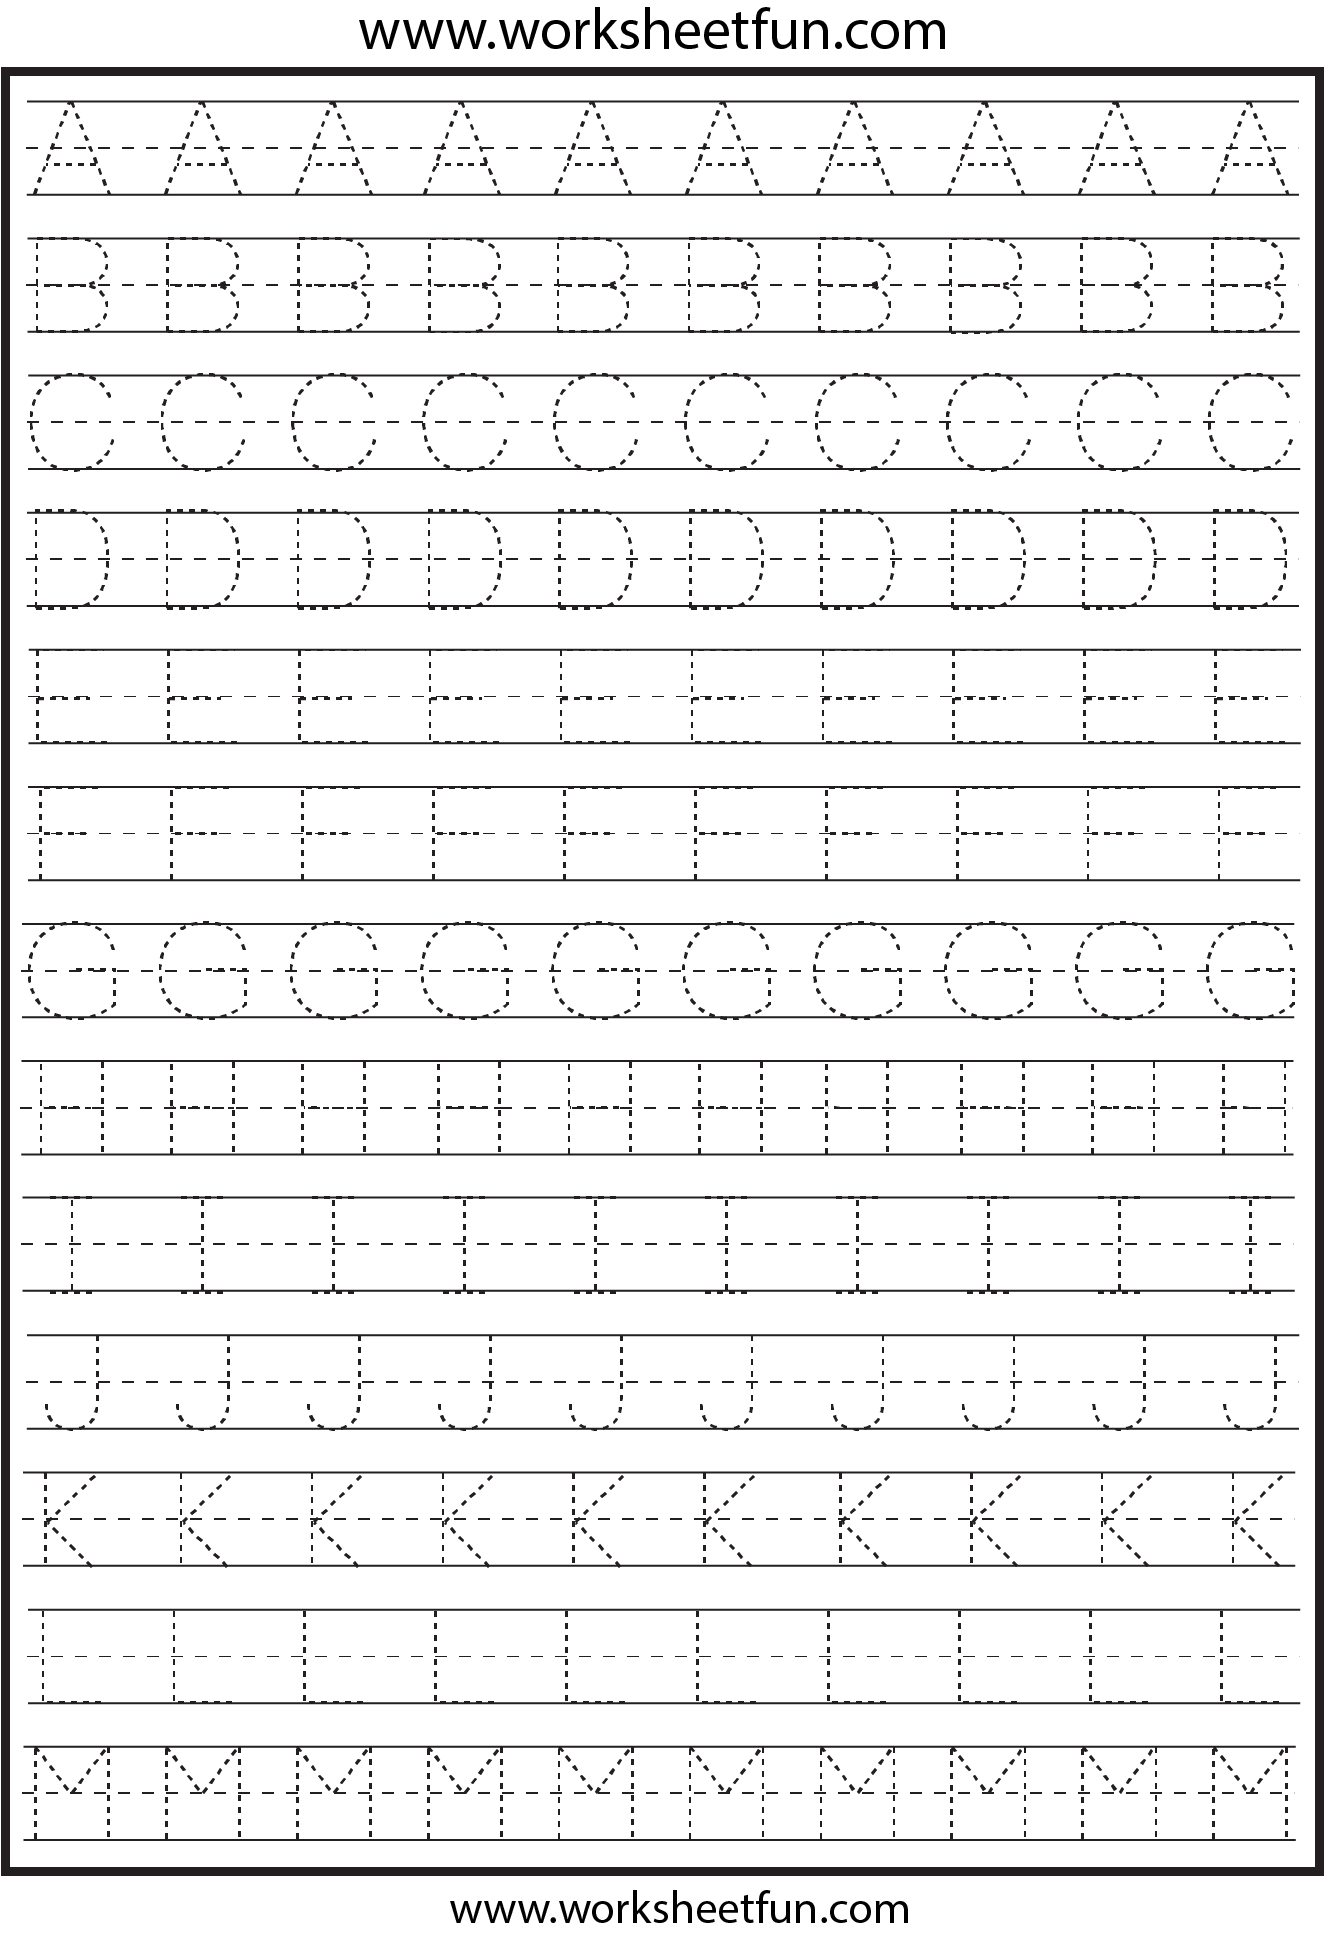 Worksheets Kindergarten Alphabet Tracing Worksheets letter tracing i need a ton of these printed lol school stuff worksheets for kindergarten capital letters alphabet 26 free pri